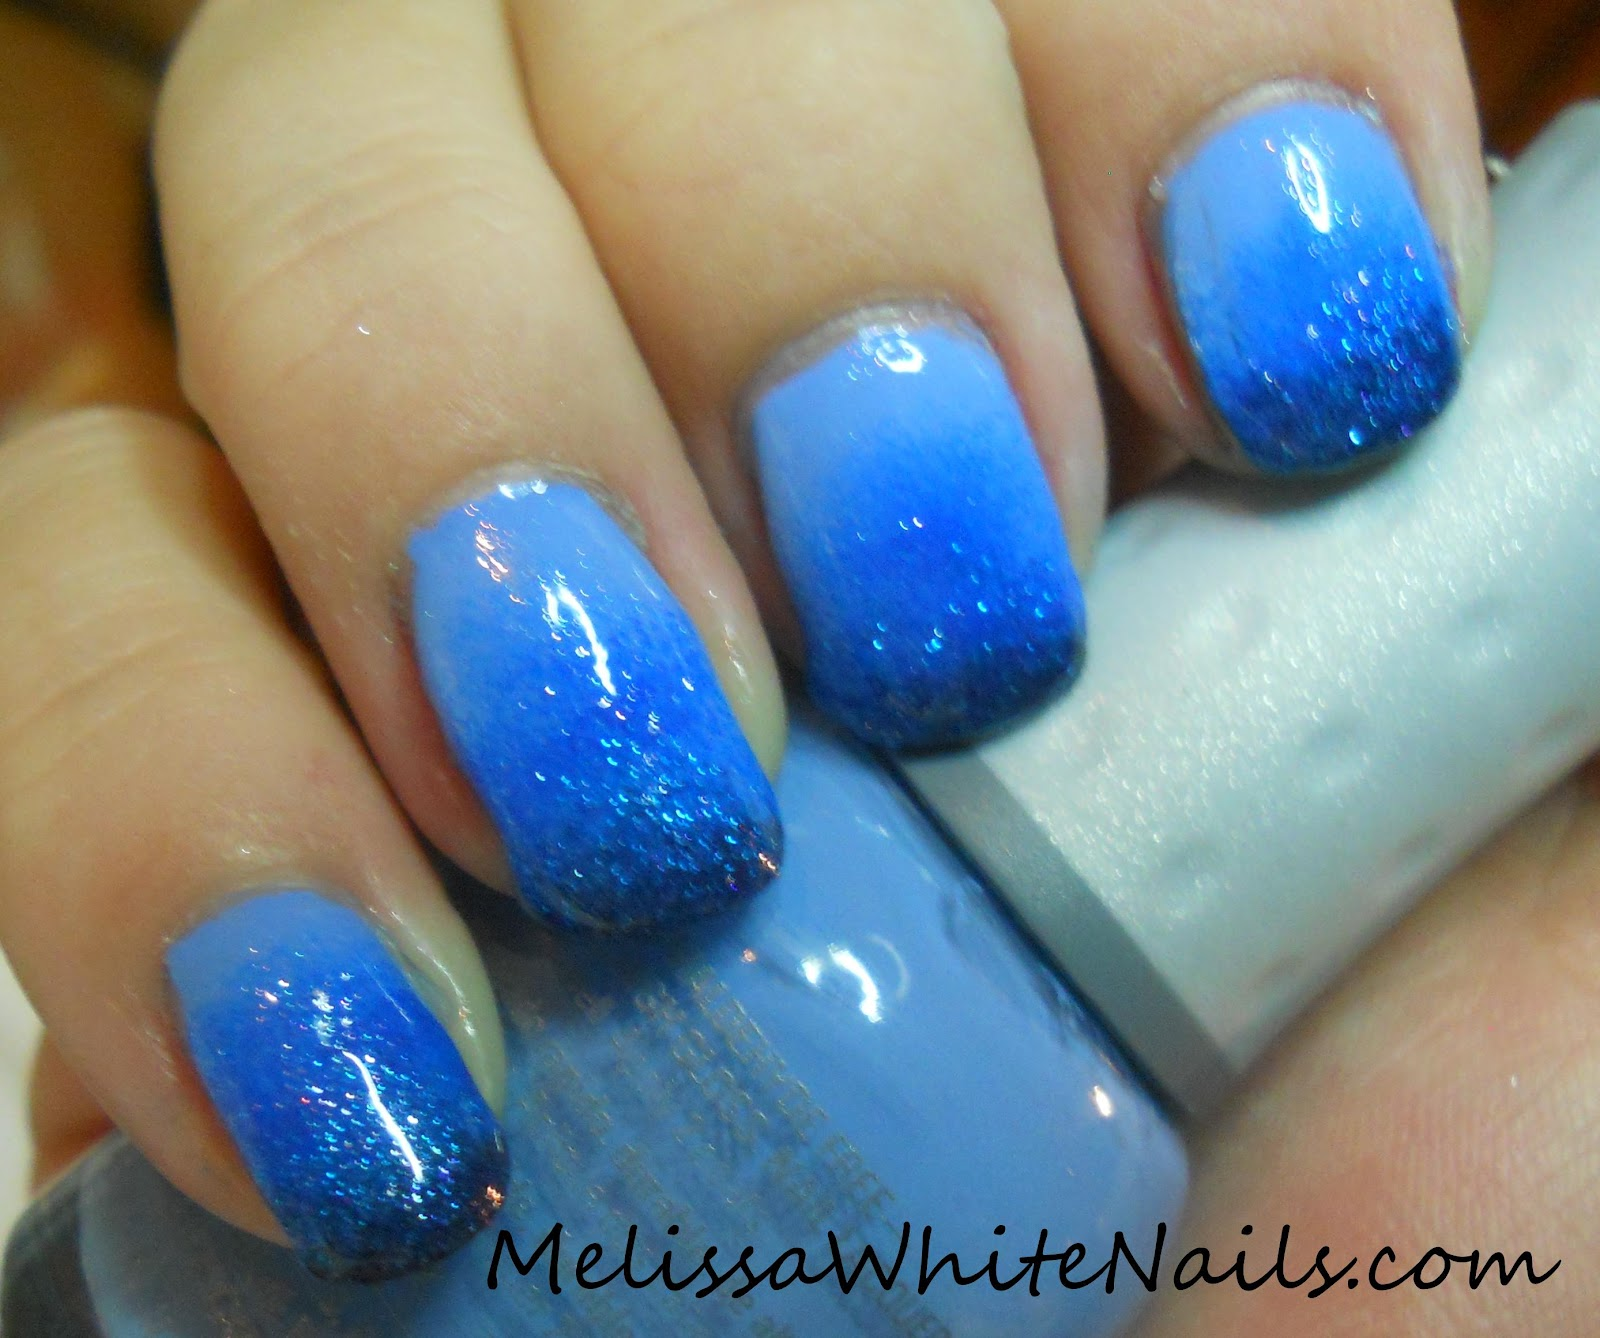 Adventures of a Nail Tech: Blue Ombre Gradient